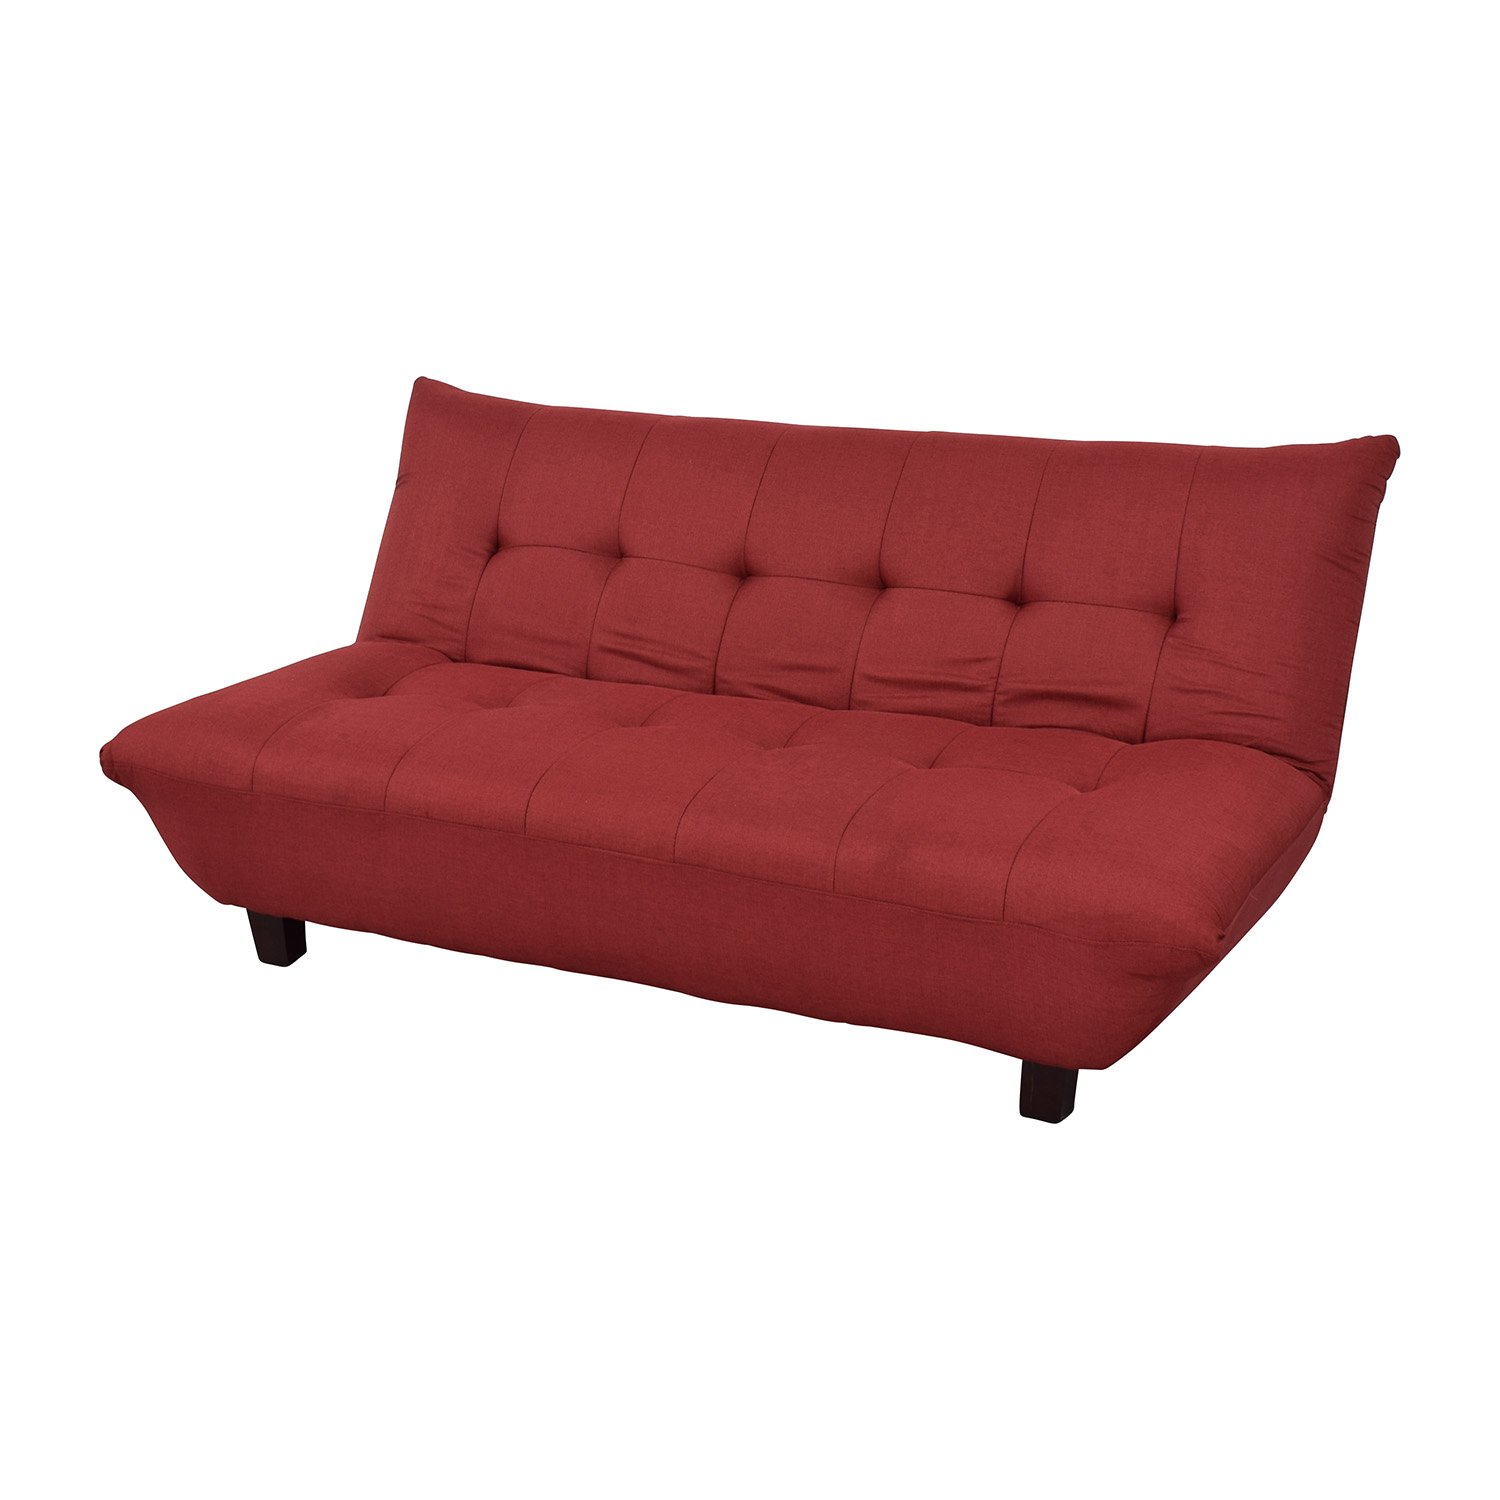 Buy Sofa Bed Online 79 Off Red Tufted Futon Sofa Bed Sofas